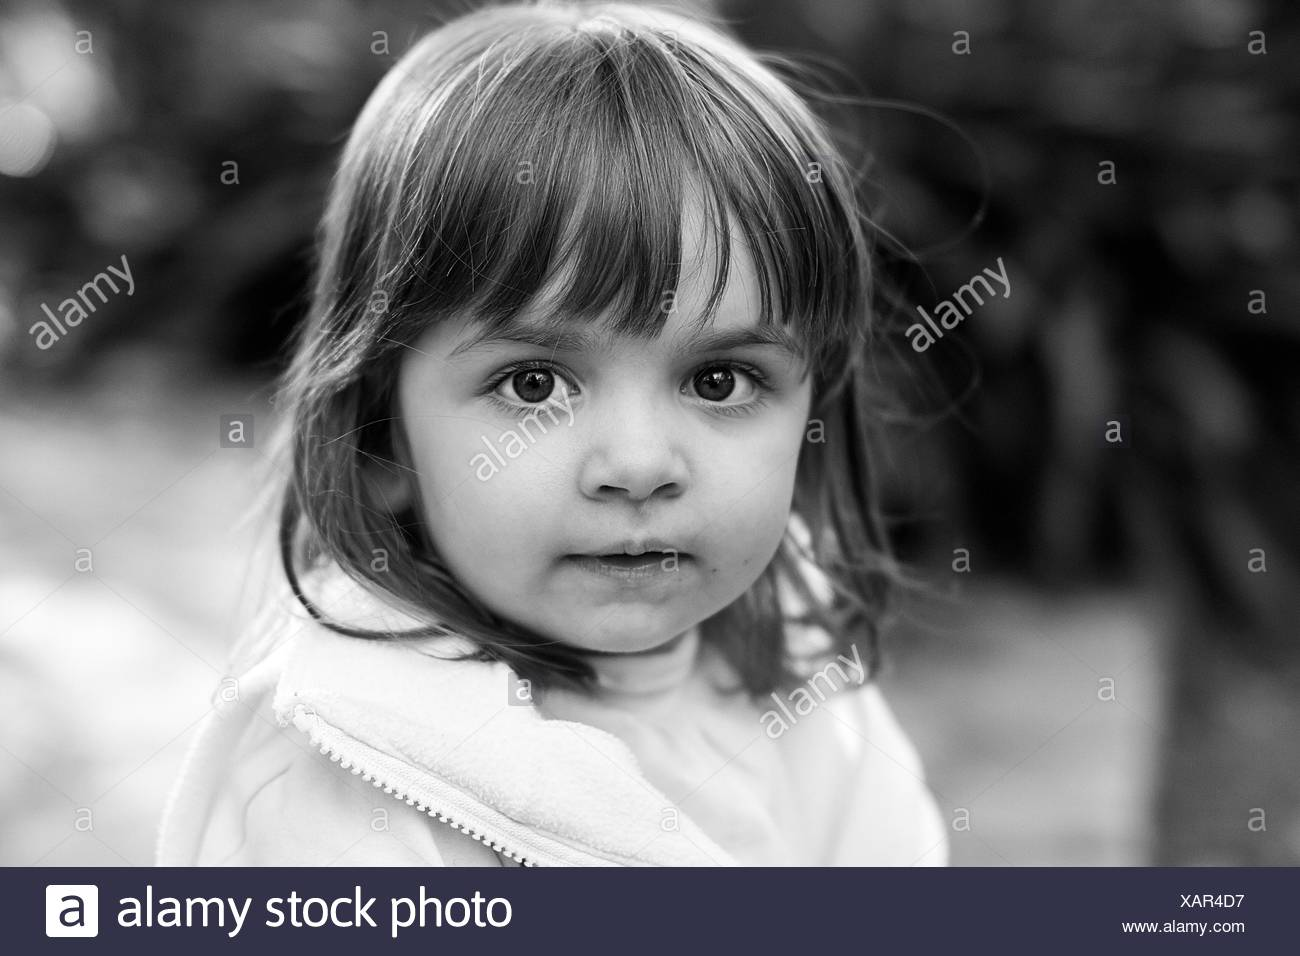 Argentina, Buenos Aires, Portrait of girl (2-3) looking at camera - Stock Image